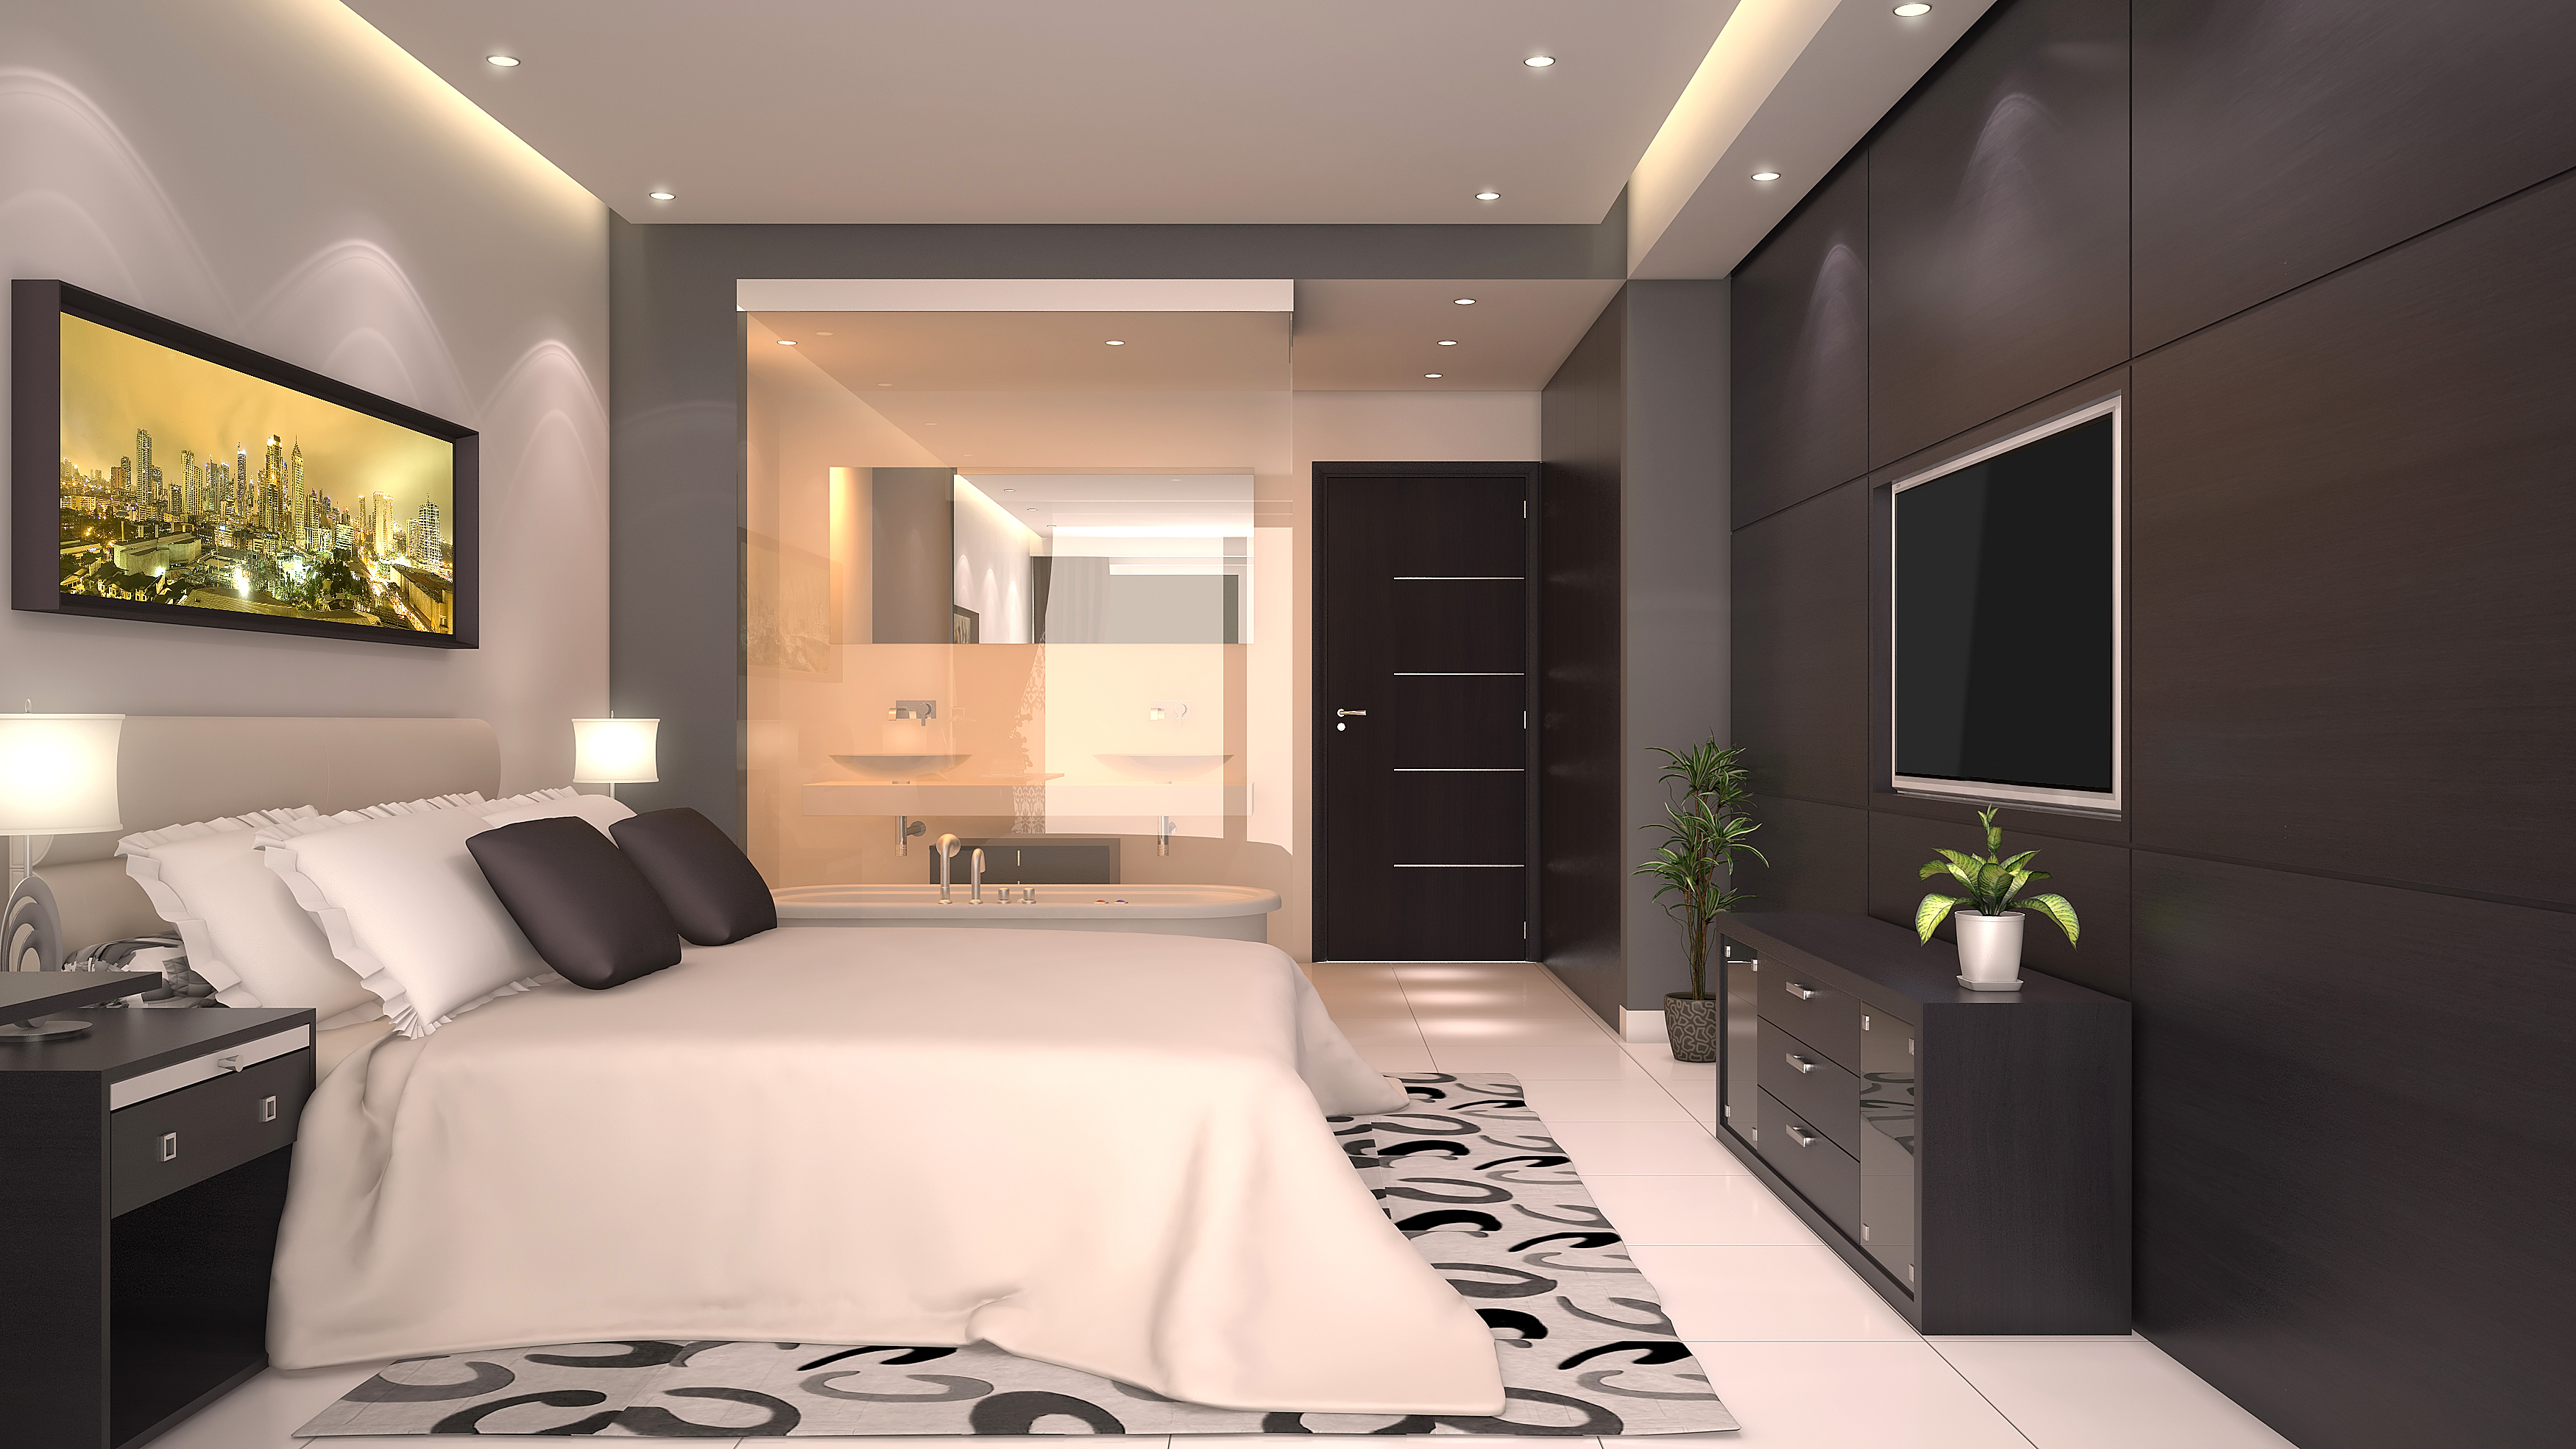 8 Guestroom Design Trends That Need To Be Retired Hotel